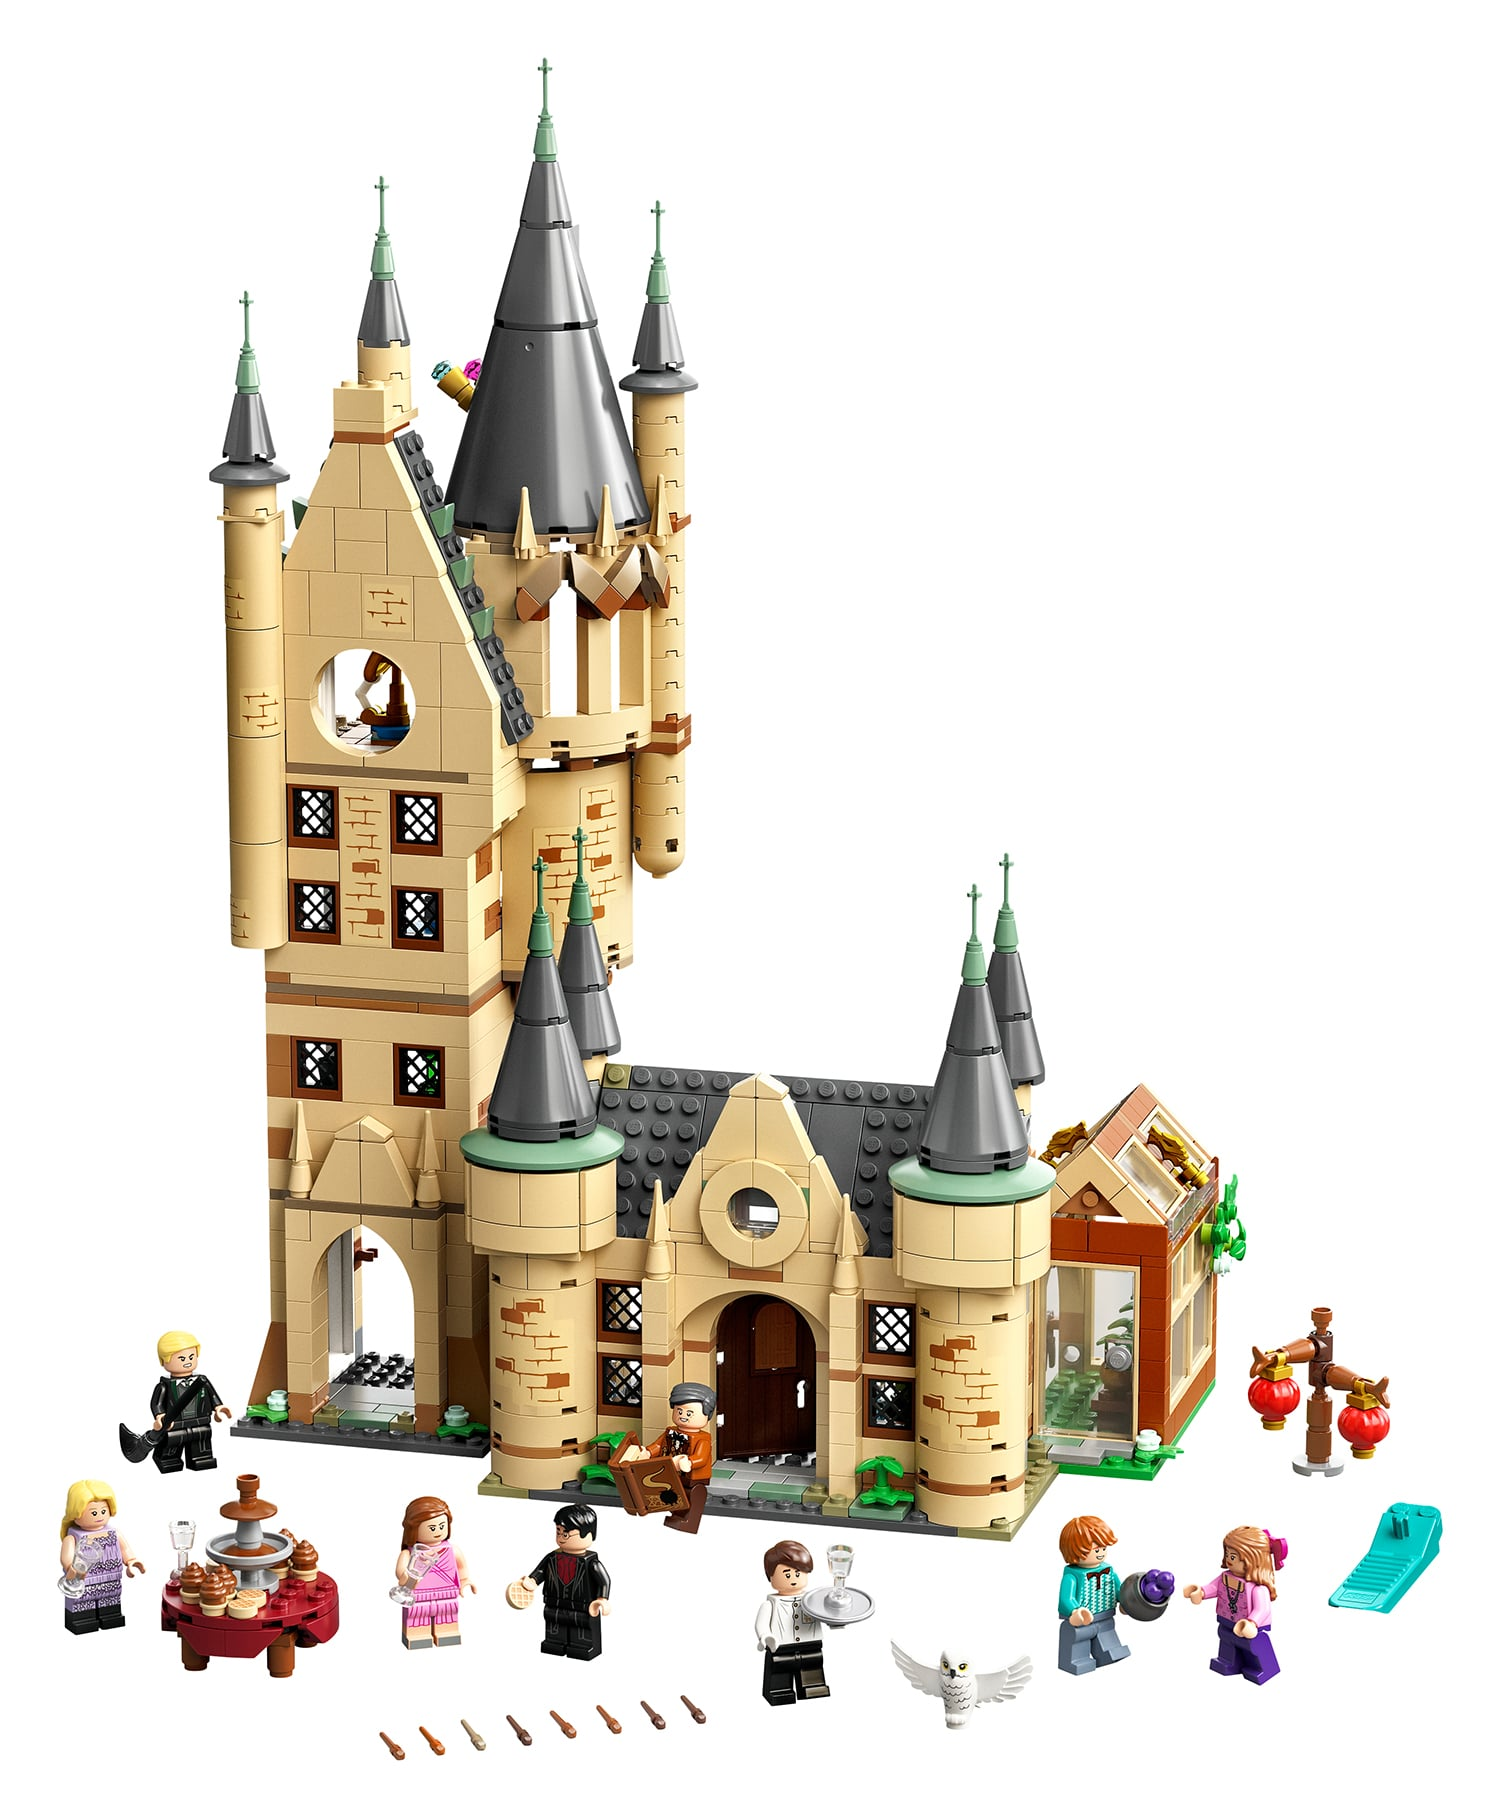 LEGO expands its Harry Potter collection with new Wizarding World playsets 14